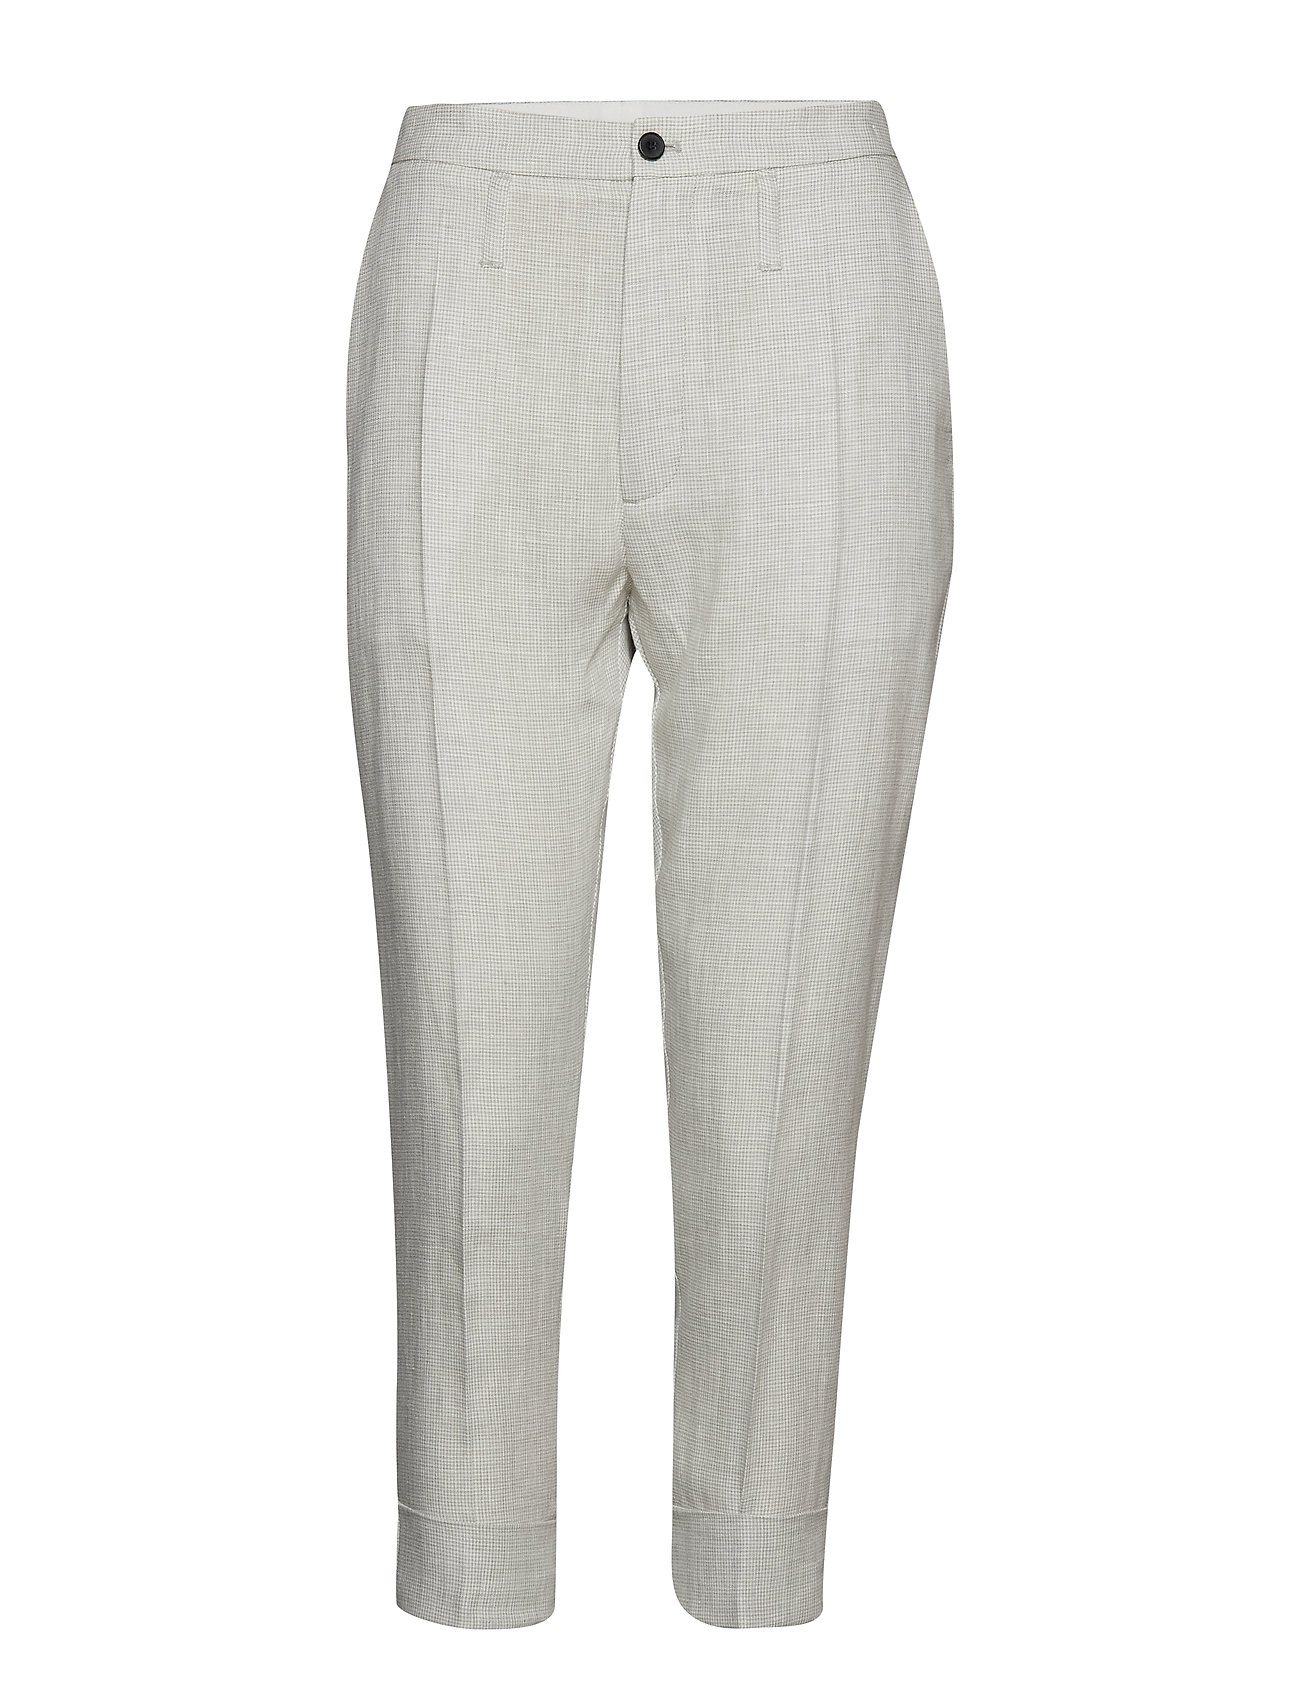 Hope Law Trouser - GREY DOGTOOTH